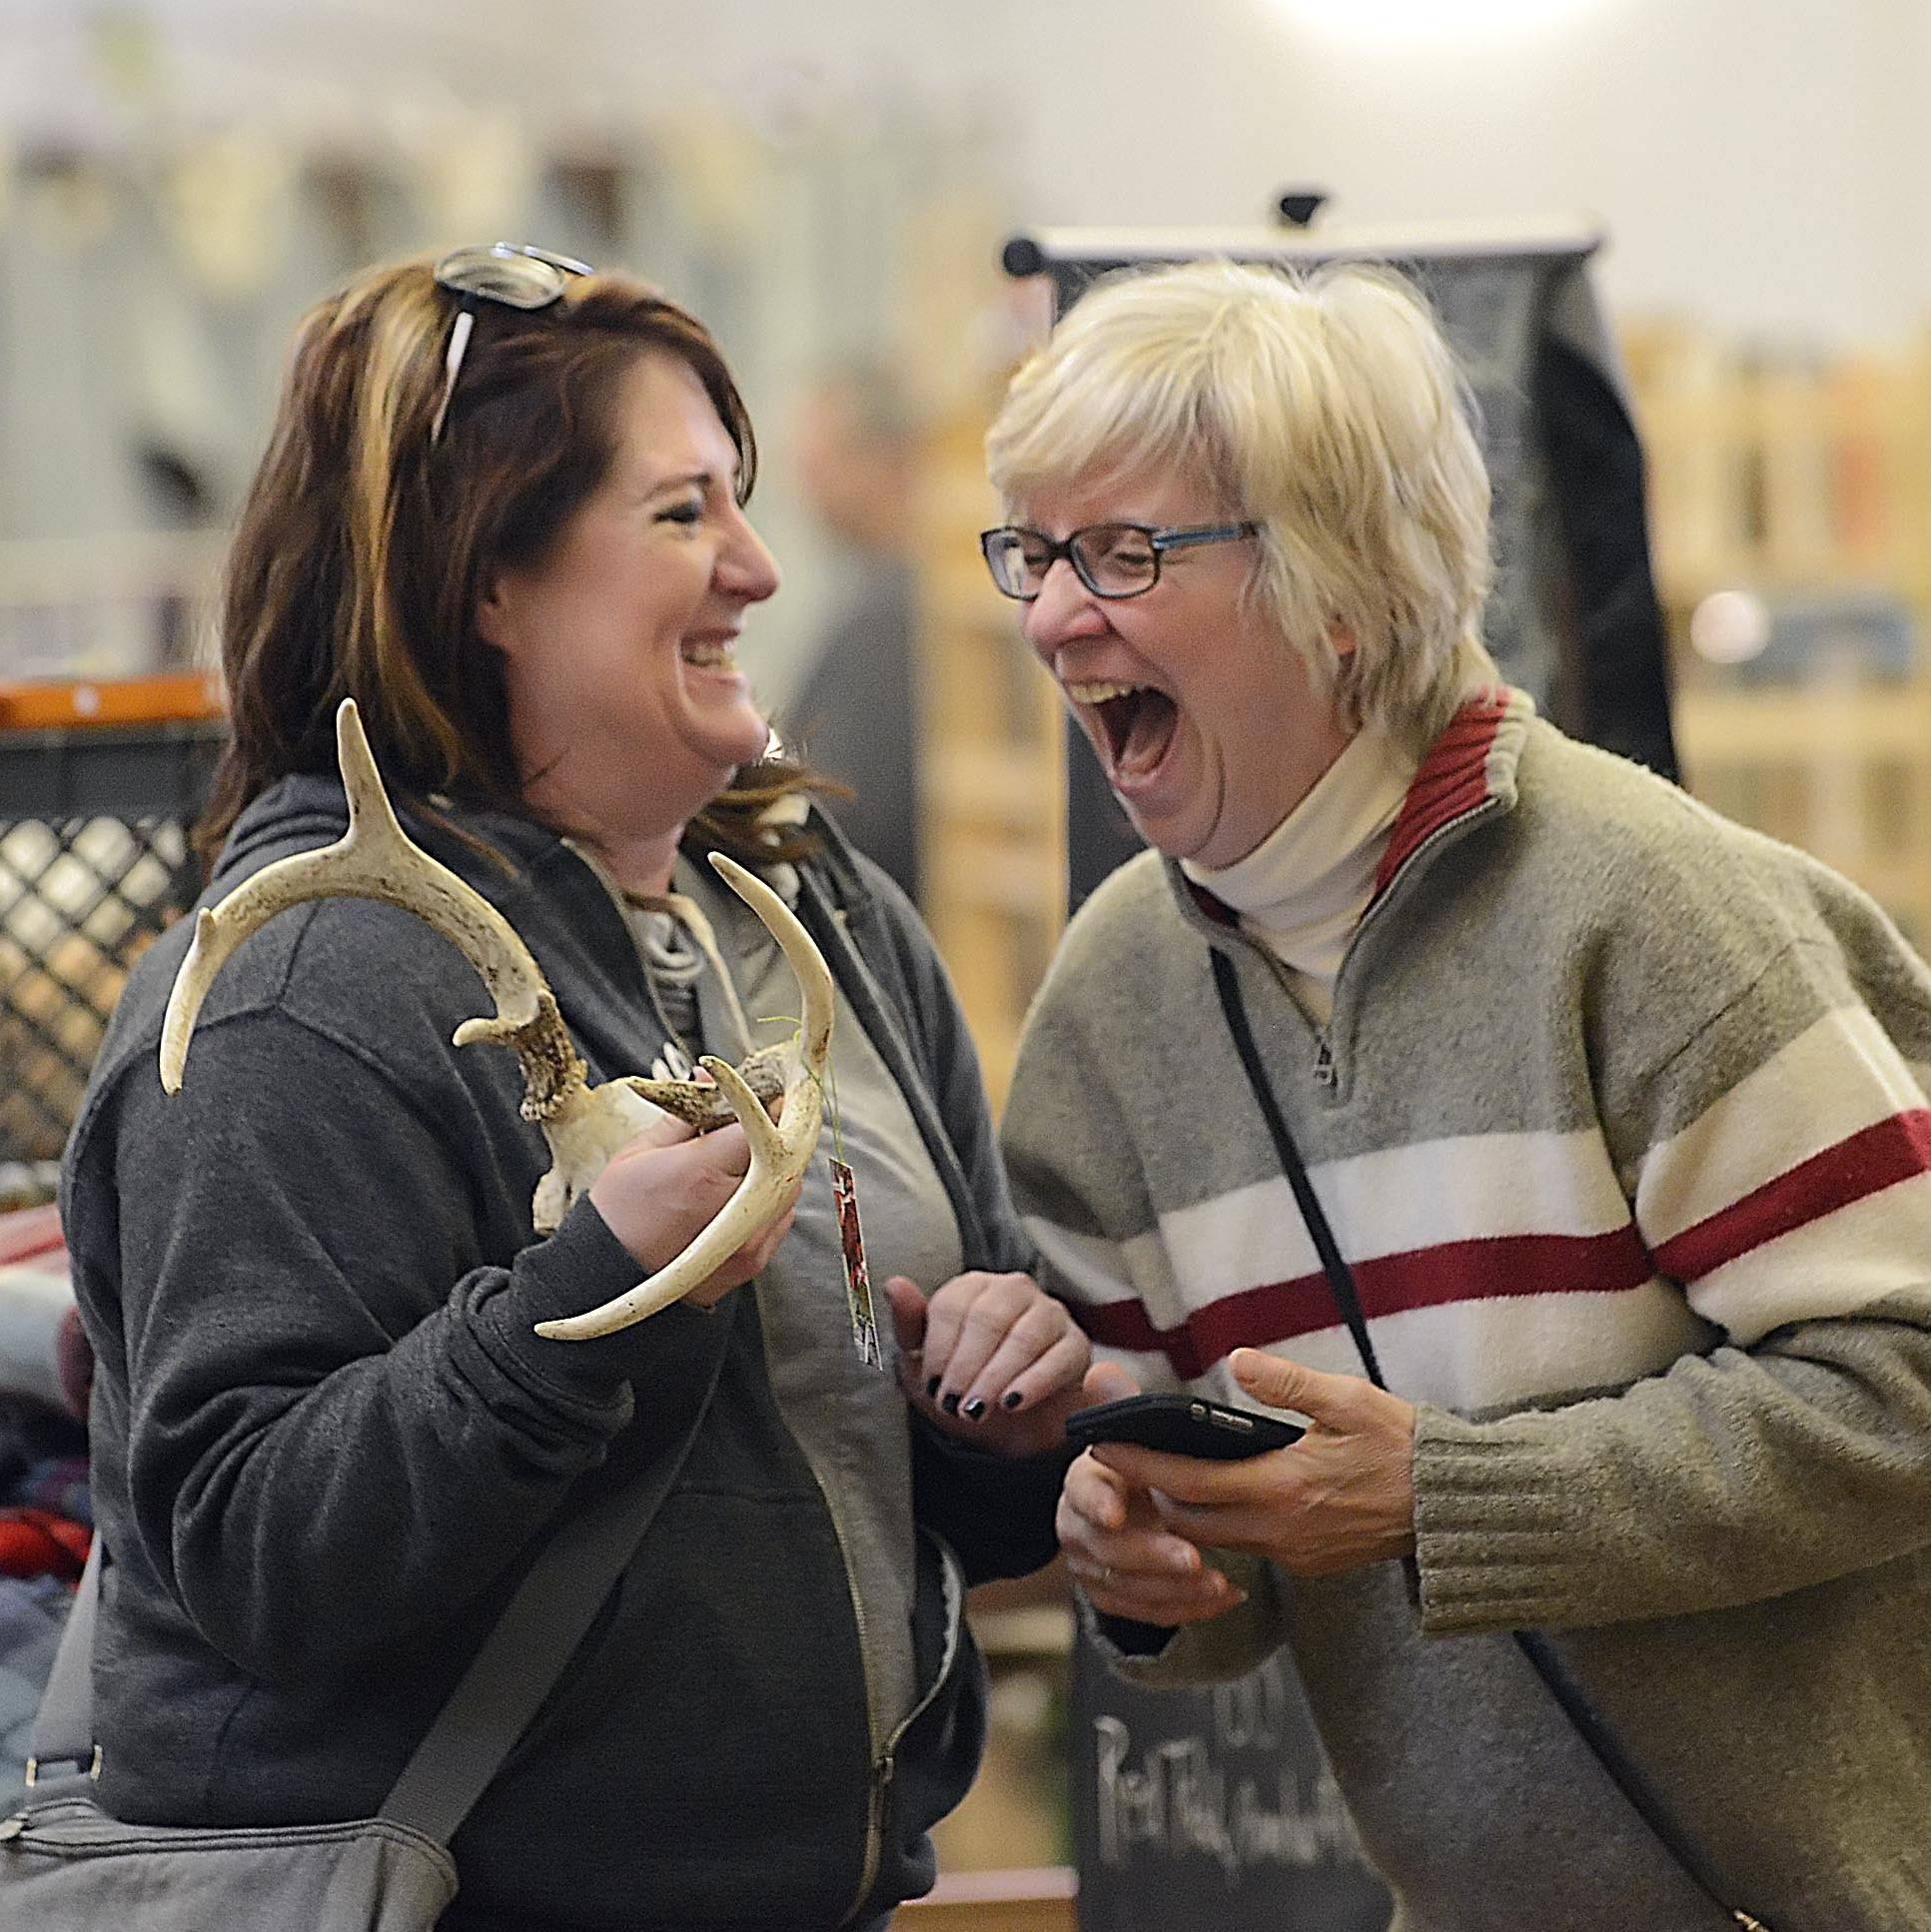 Lisa Michaels, left, of South Elgin, laughs with Kathy Filipiak, of St. Charles, while they discuss the price of deer antlers at the first Kane County Flea Market of 2015 at the fairgrounds in St. Charles. Filipiak was manning a booth for This2That for a friend.